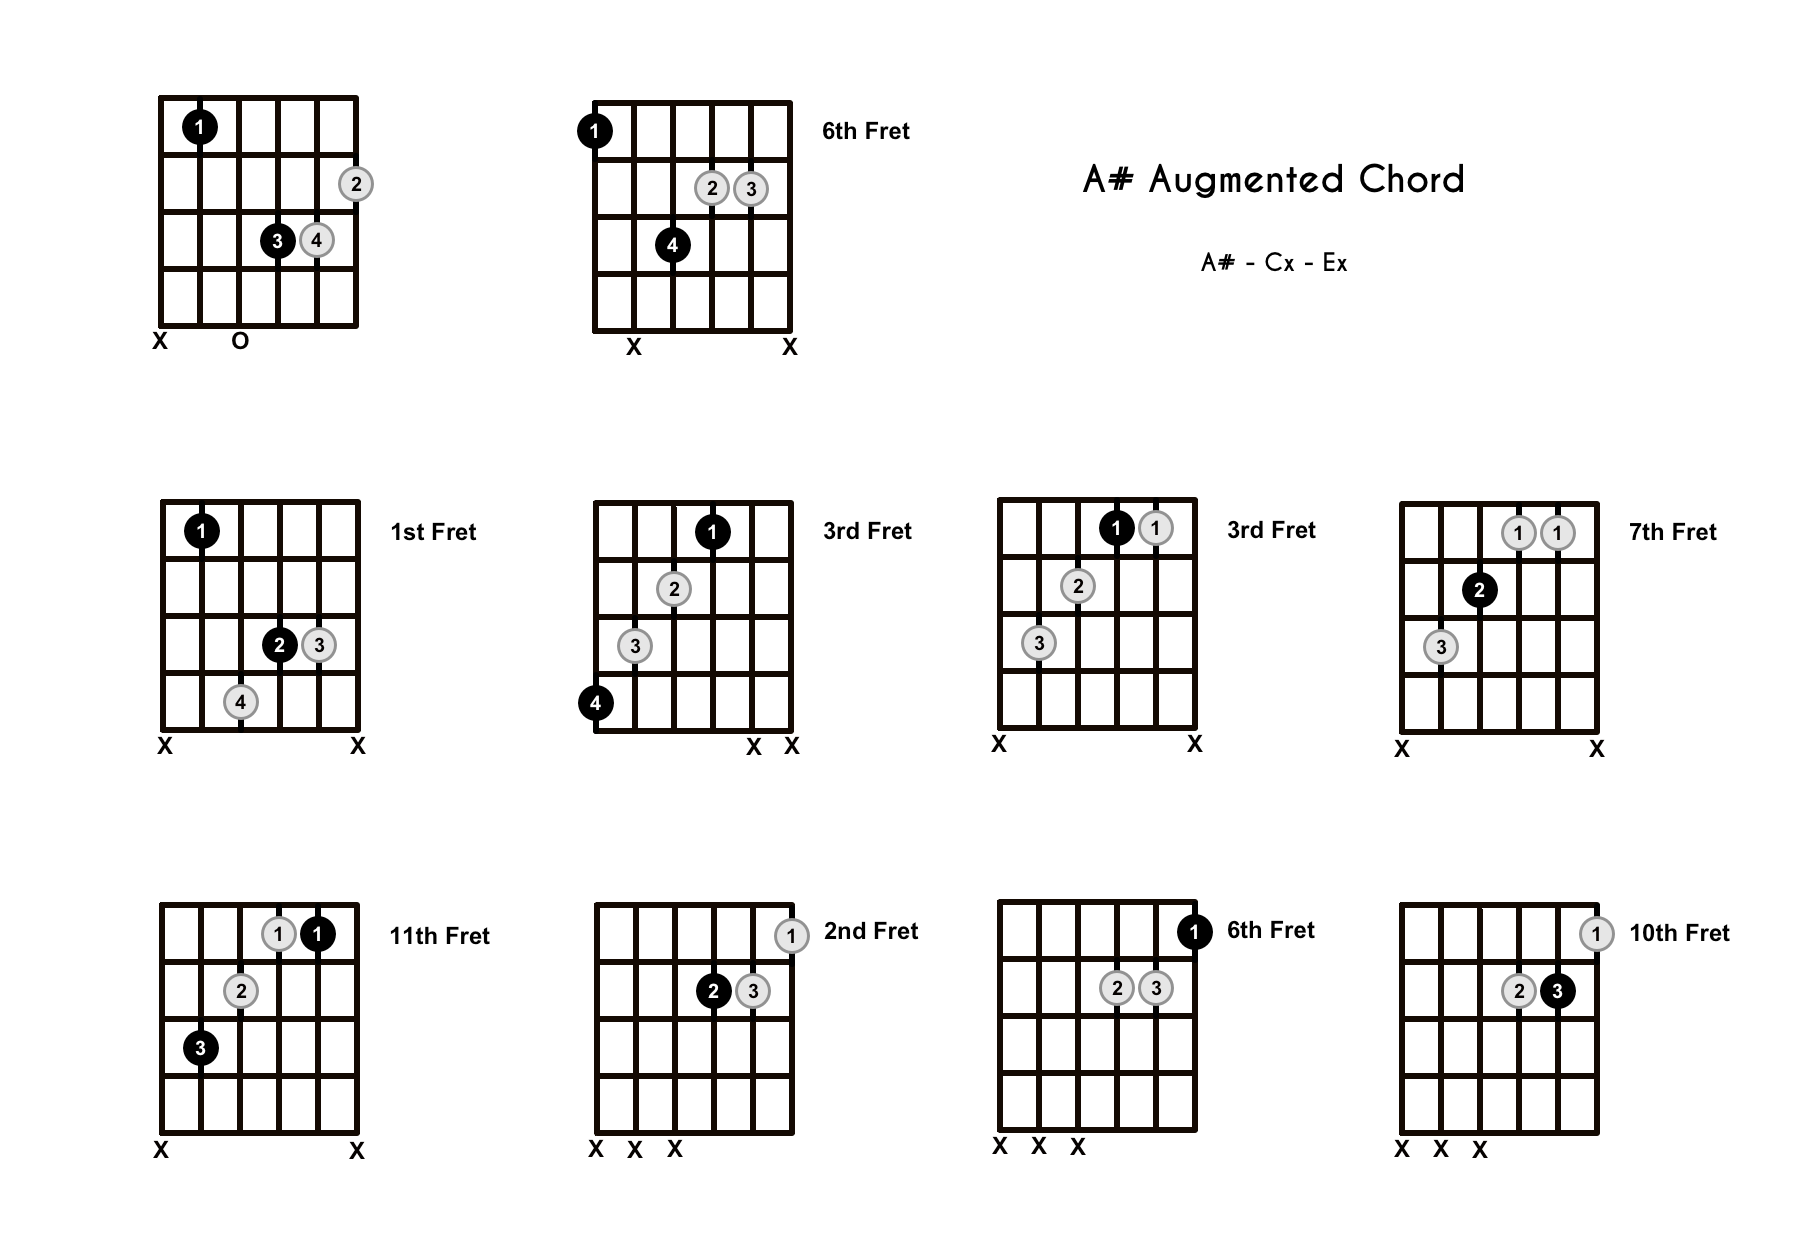 A Sharp Augmented Chord on the Guitar (A#+) – Diagrams, Finger Positions, Theory